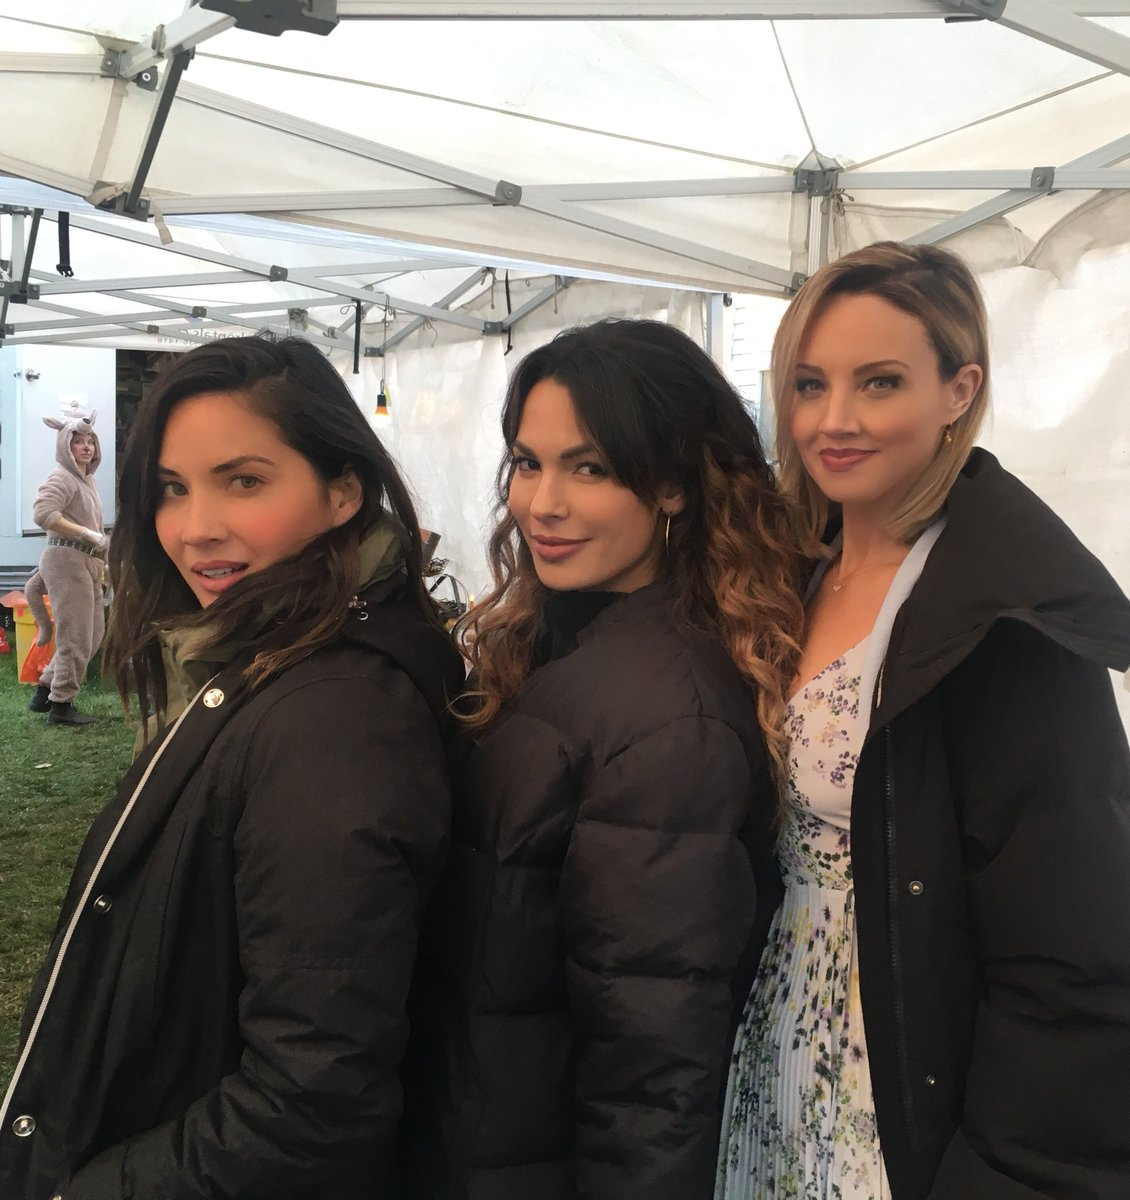 When good friends have the same good side ????????????‍♀️????????‍♀️????‍♀️ @nadinevelazquez @TheBrianneDavis @SIXonHISTORY https://t.co/gSesnXa0Em